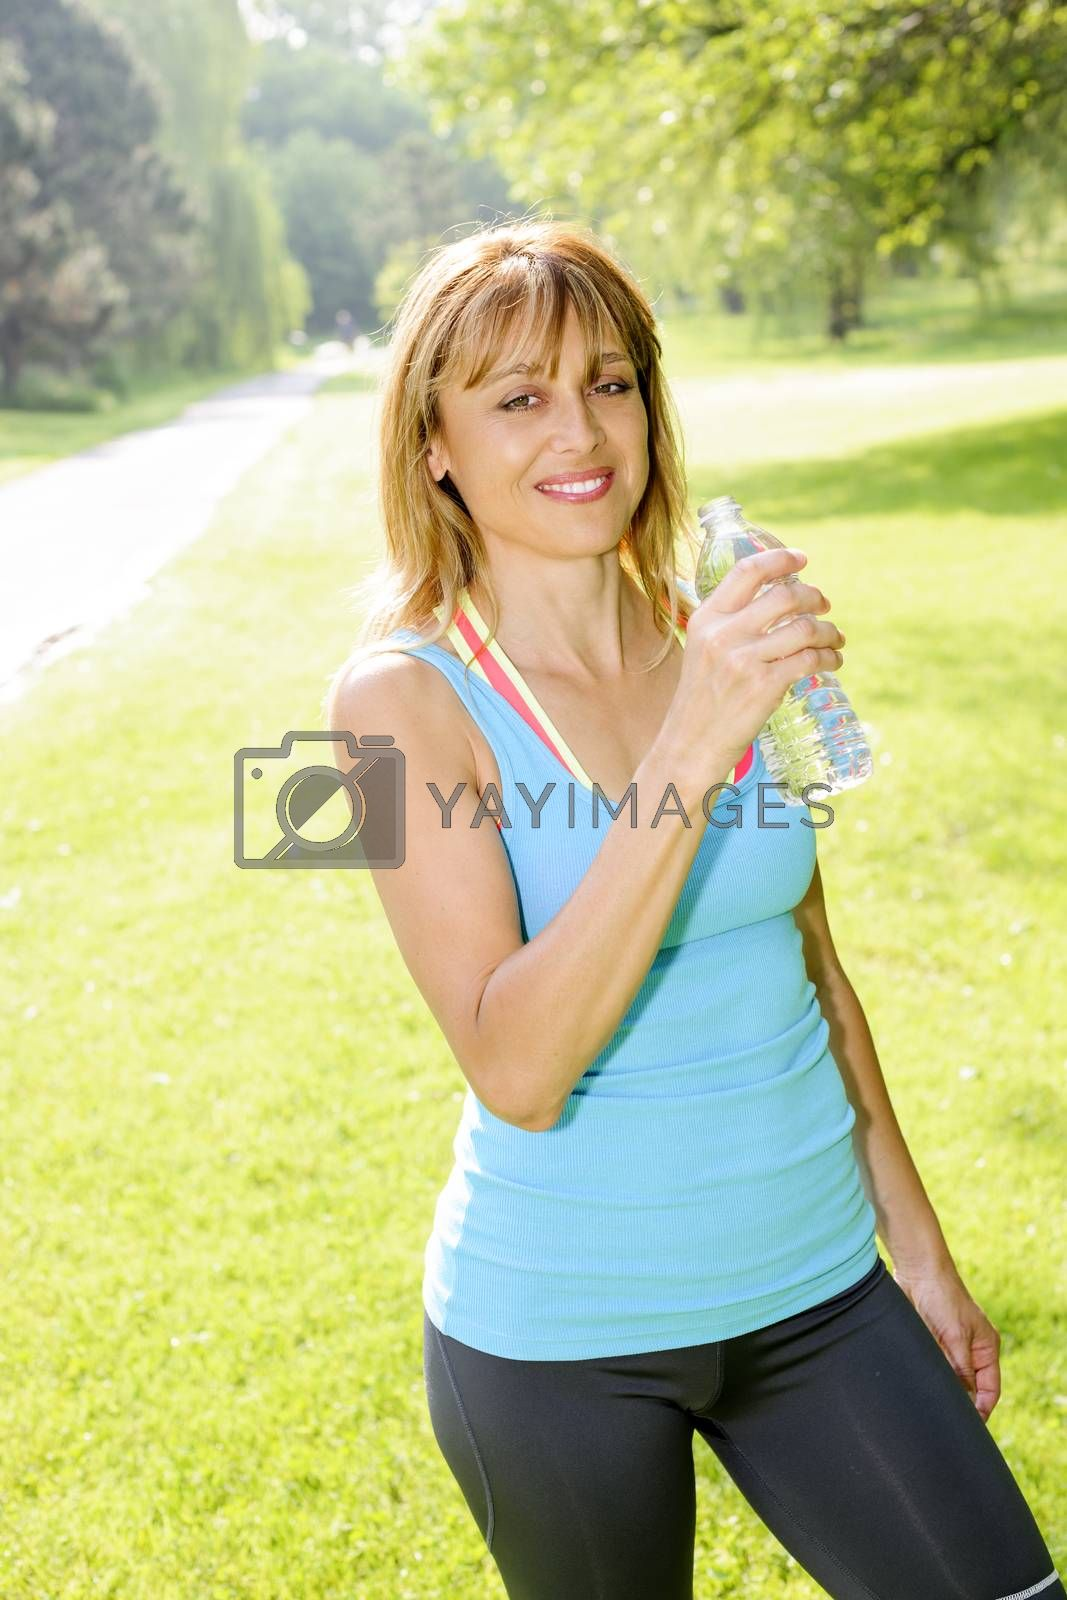 Smiling female fitness instructor taking a break with water bottle while exercising outdoor